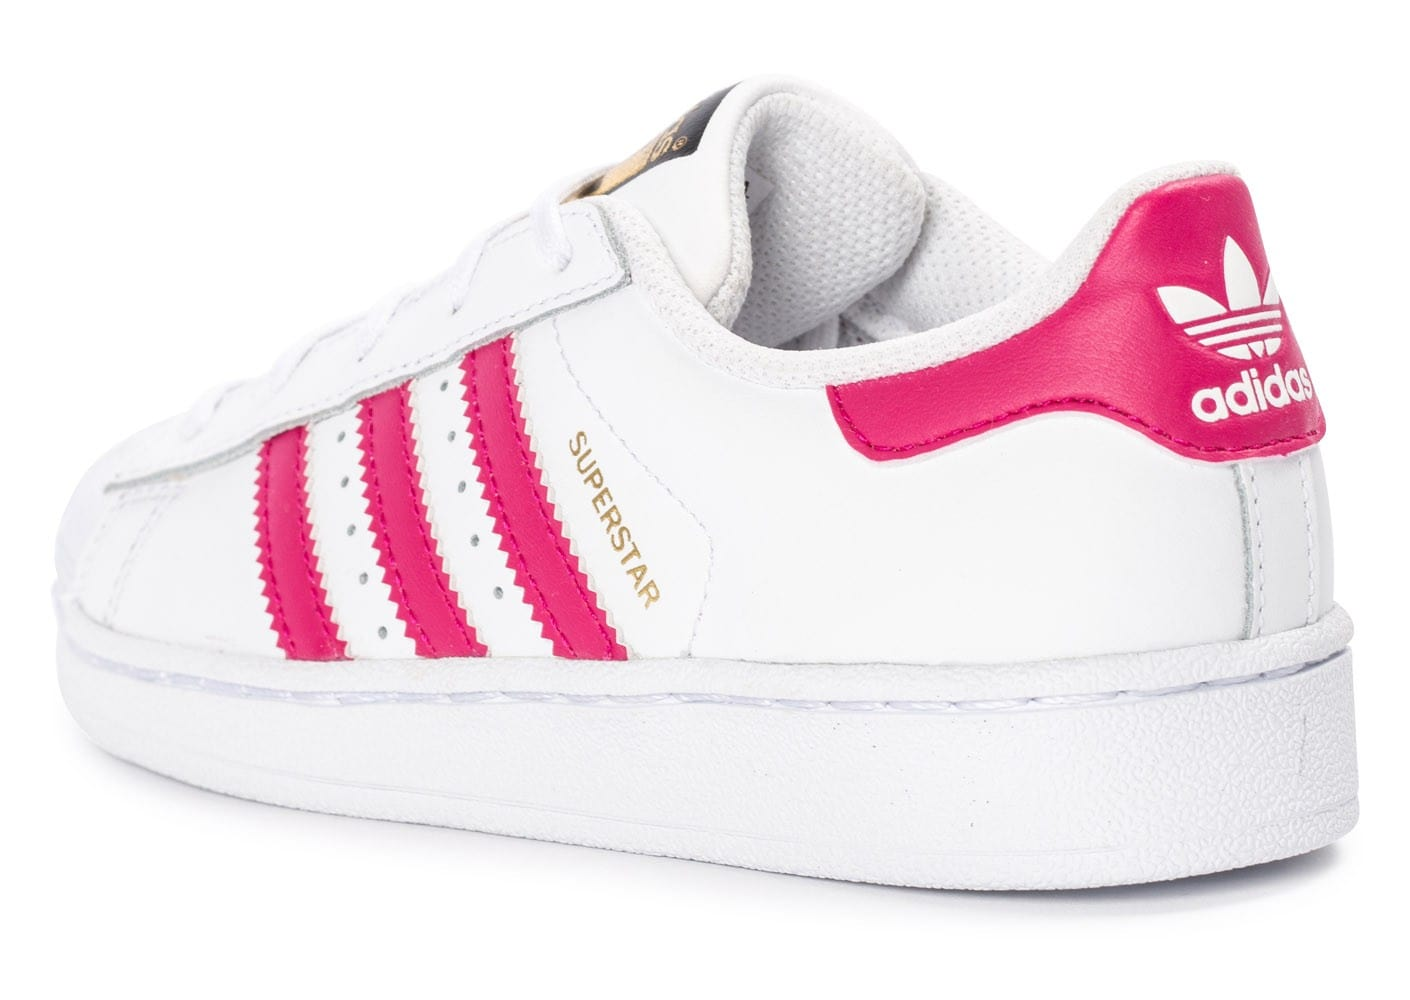 adidas superstar foundation enfant blanche et rose chaussures adidas chausport. Black Bedroom Furniture Sets. Home Design Ideas